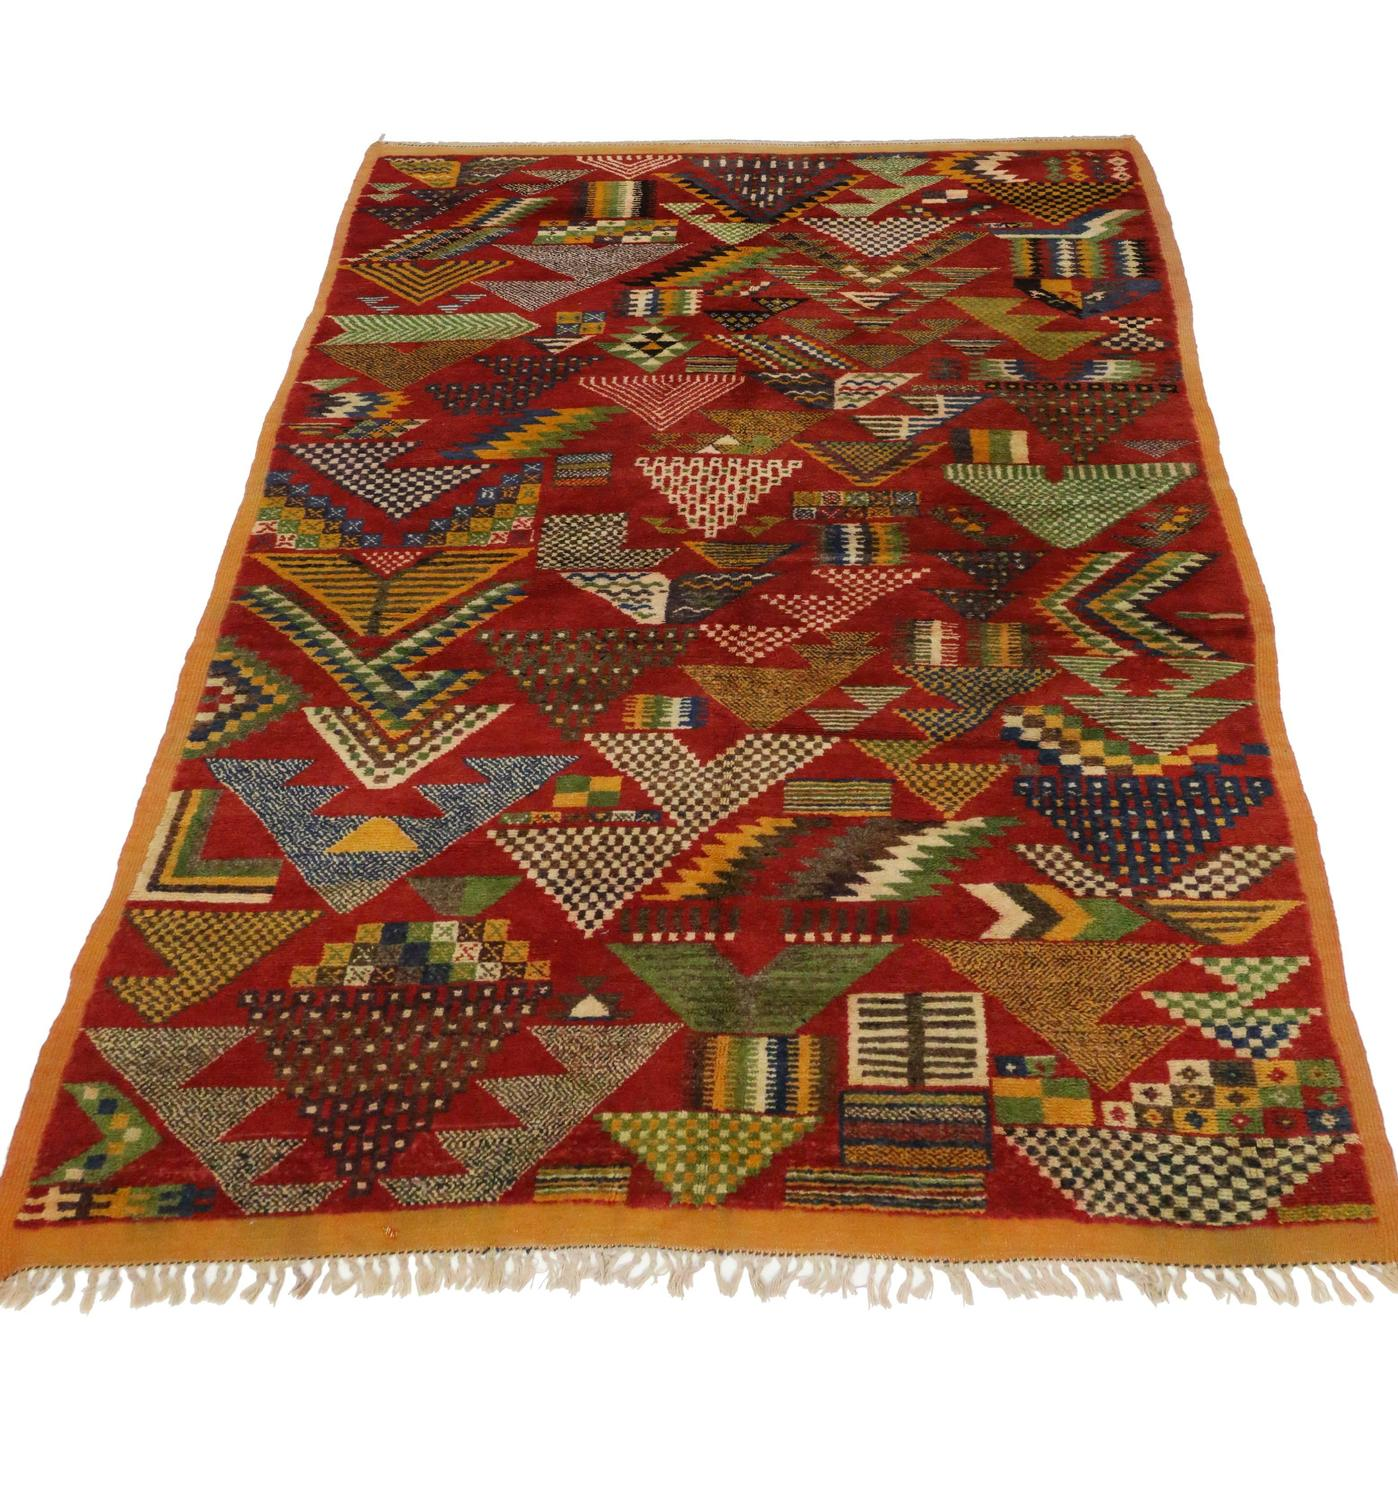 Berber Moroccan Rug With Art Deco Design For Sale At 1stdibs